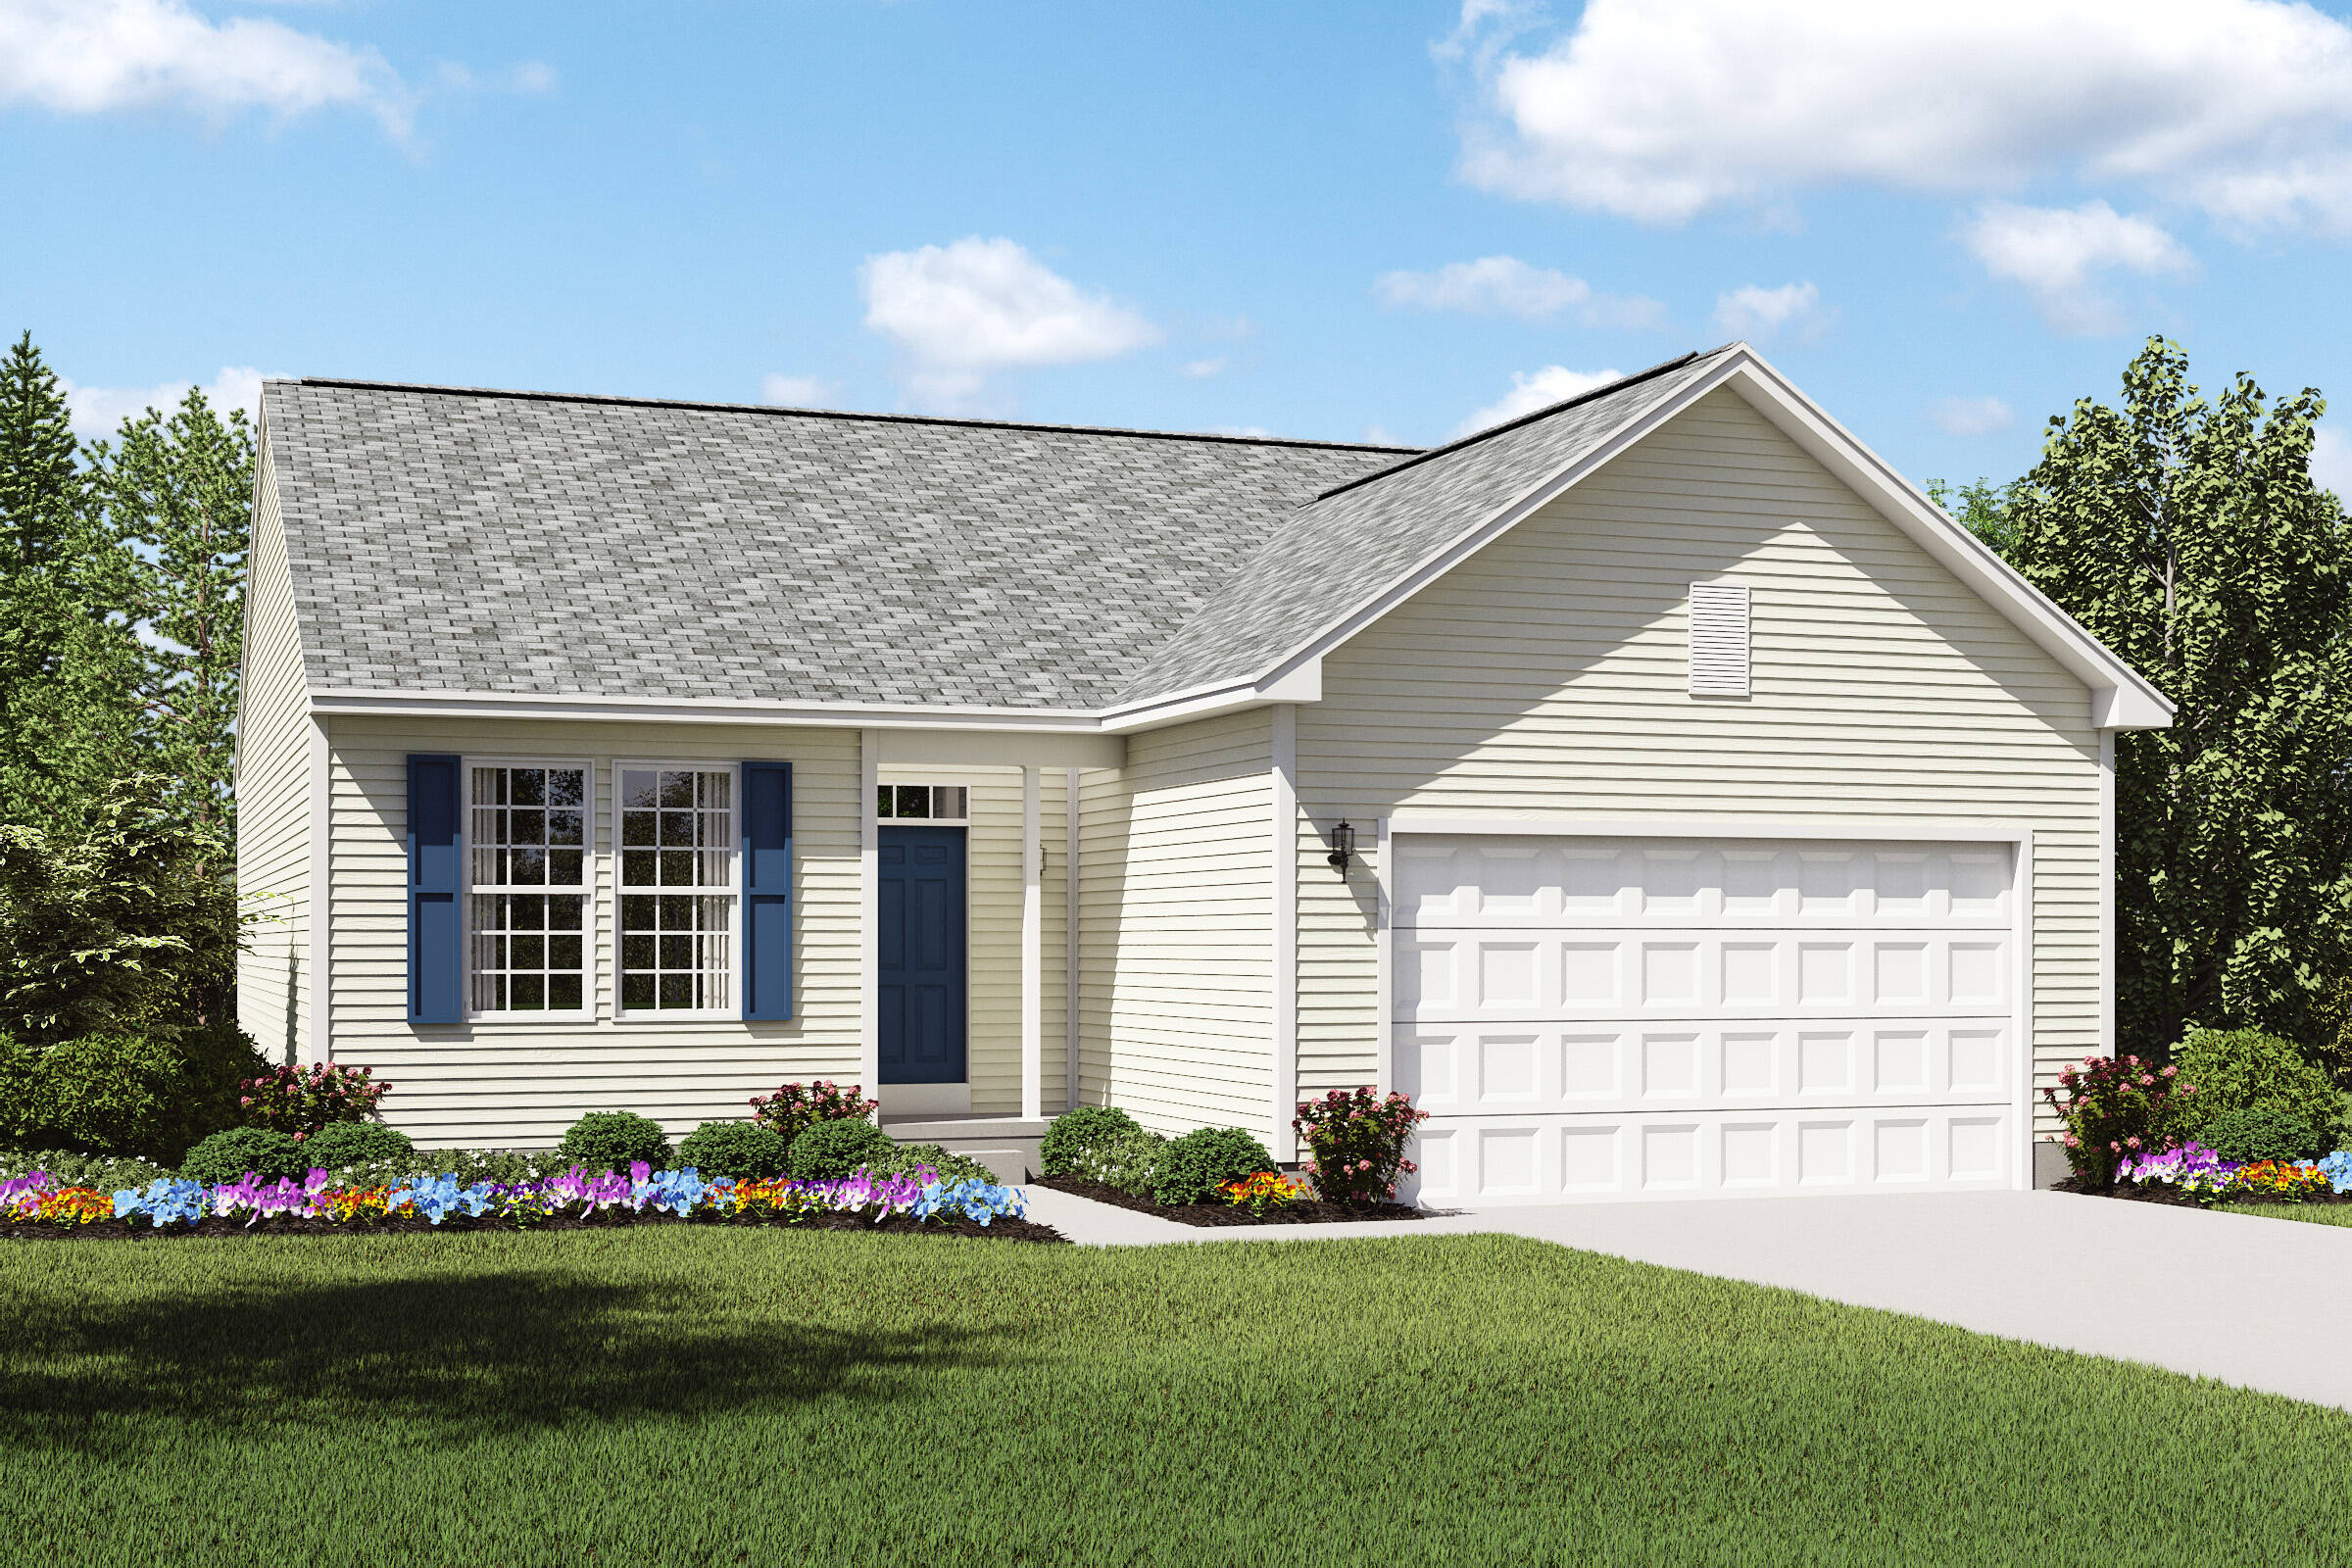 pinacle a new ranch home design northeast ohio